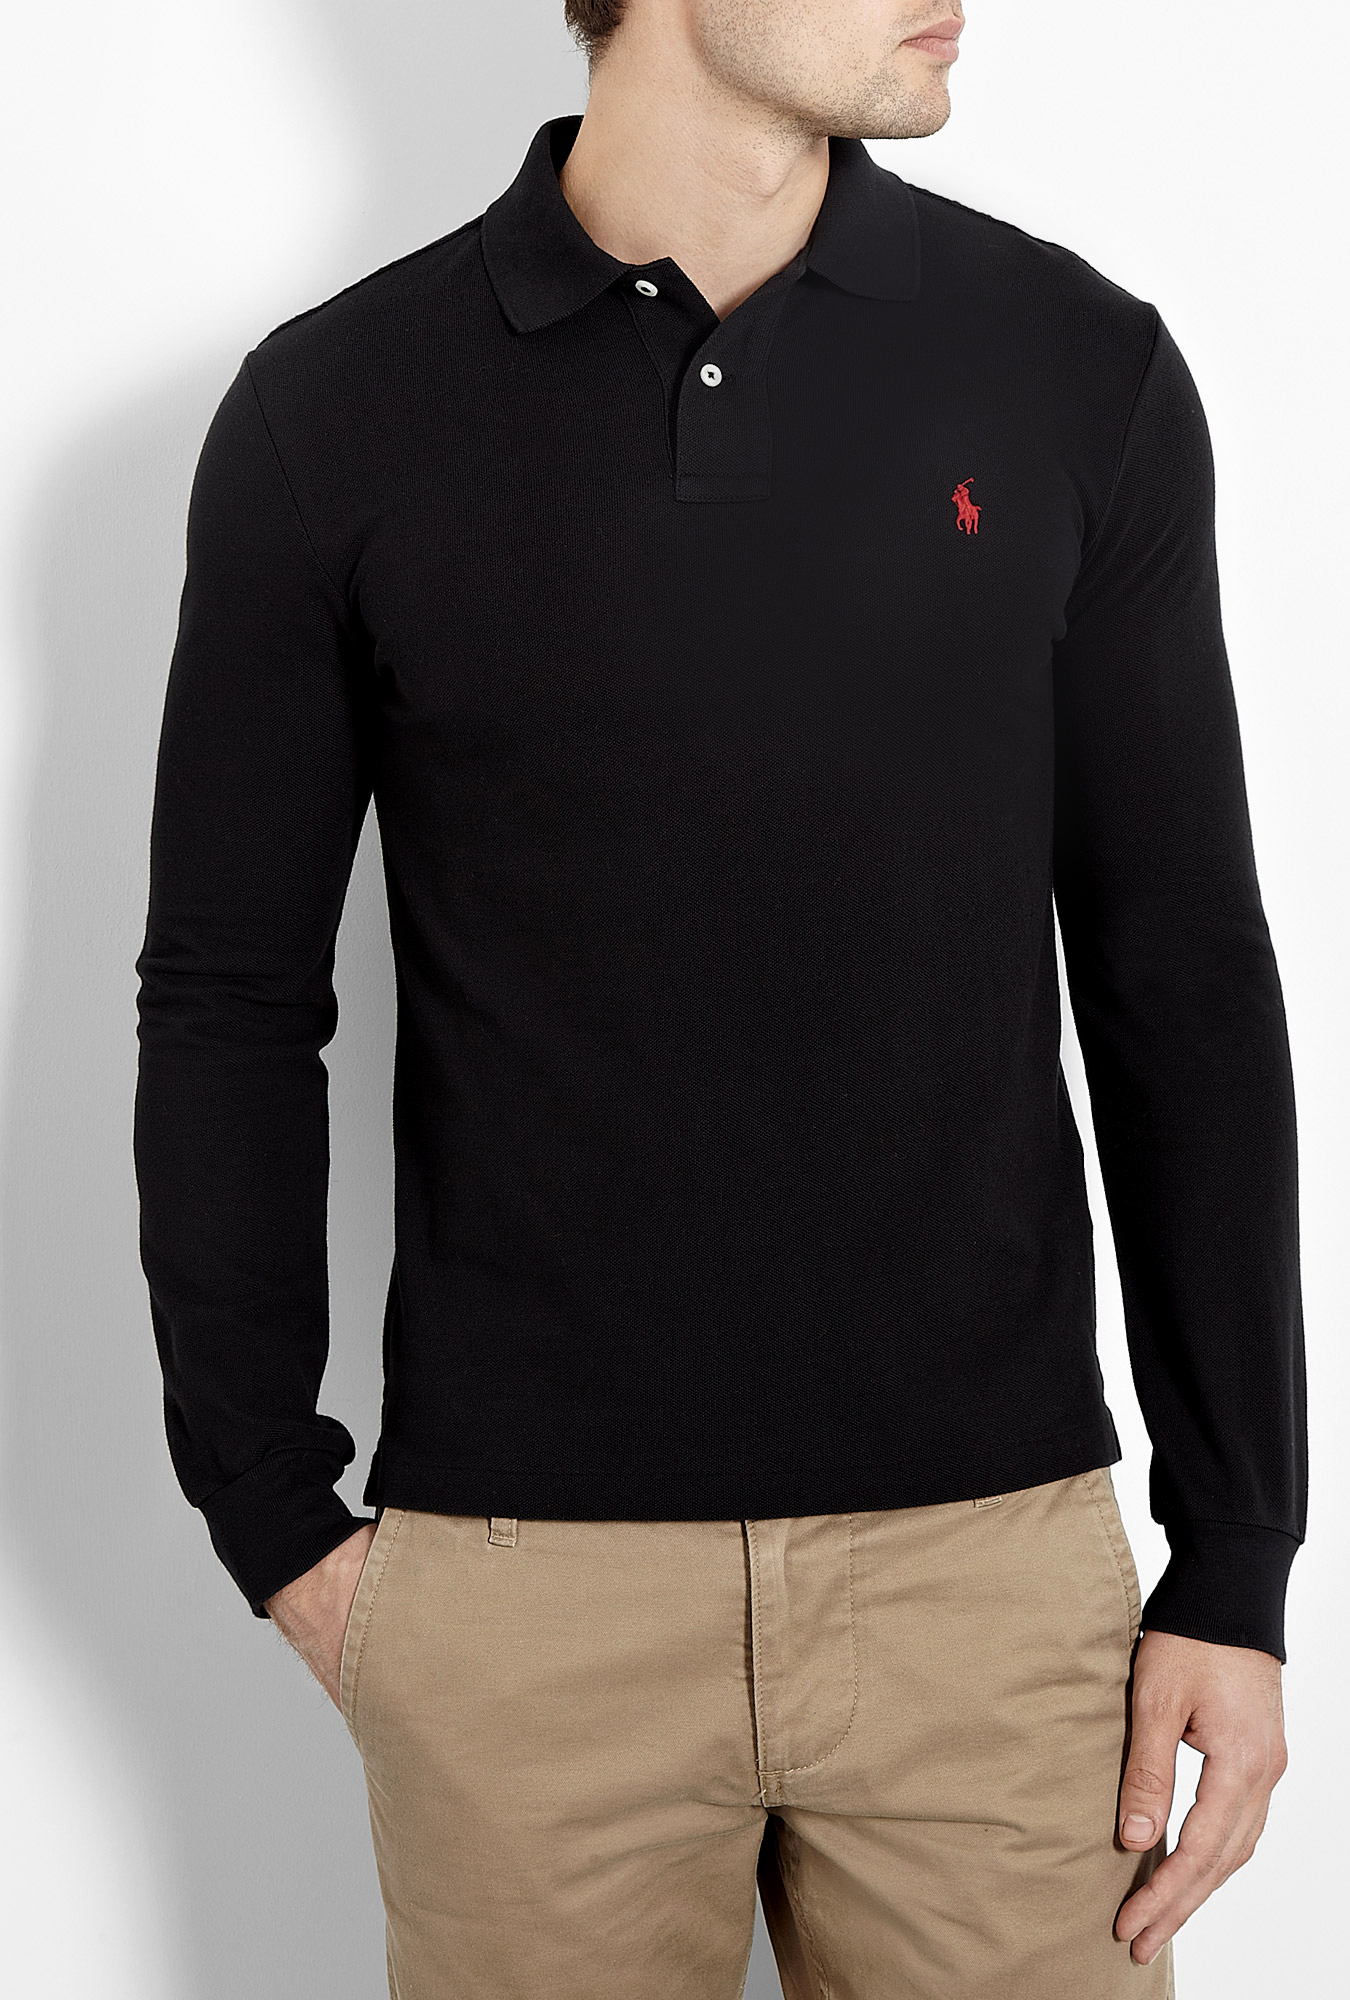 polo ralph lauren black long sleeve slim fit polo shirt in black for men lyst. Black Bedroom Furniture Sets. Home Design Ideas